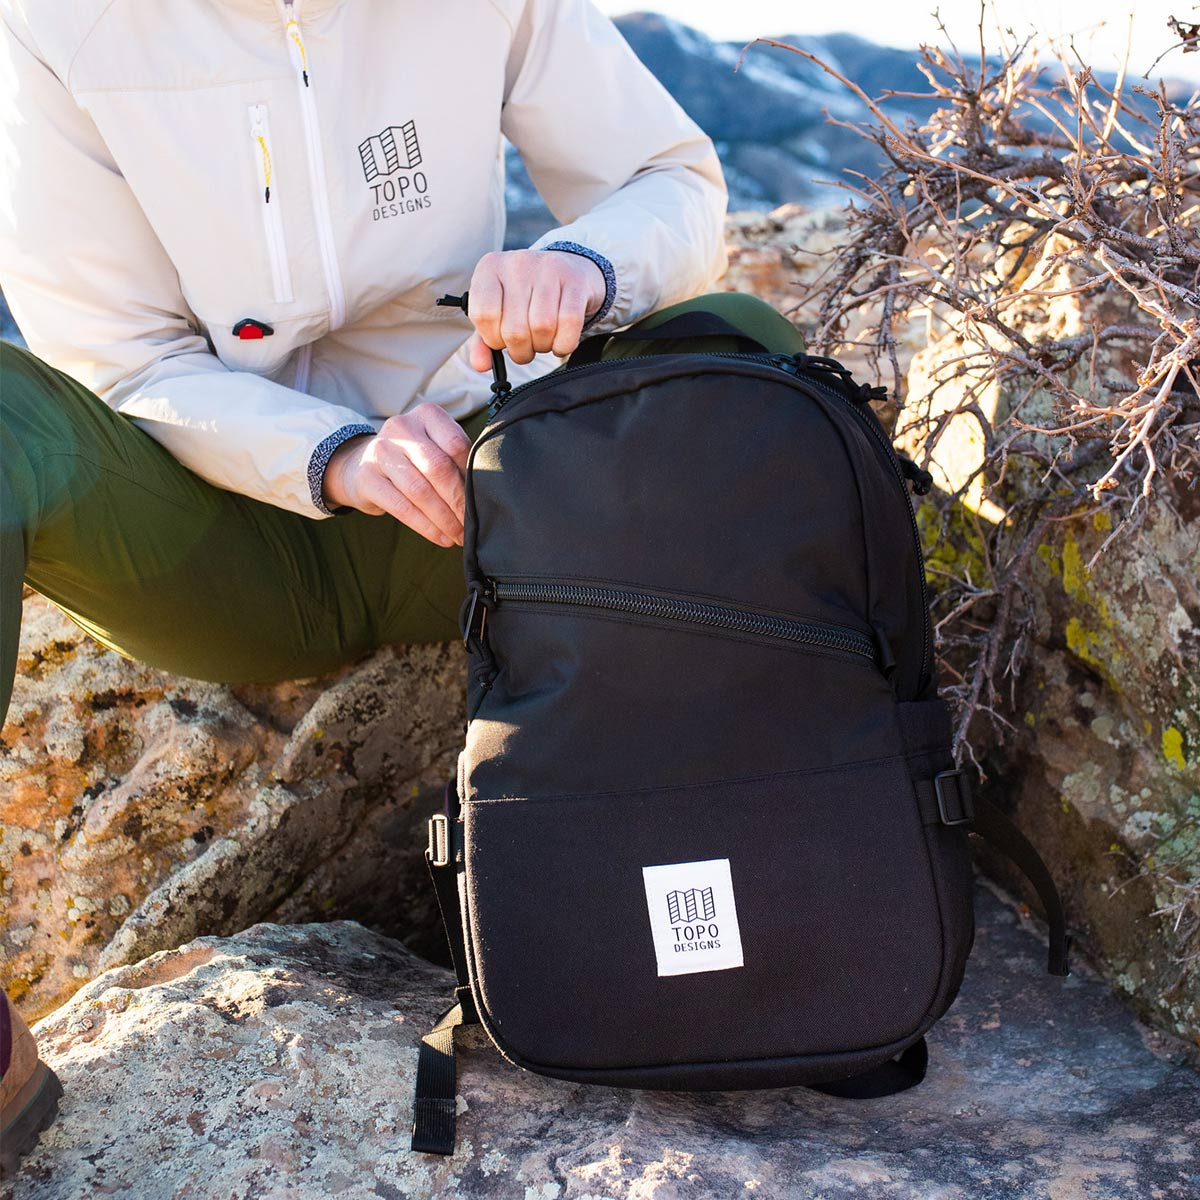 Topo Designs Standard backpack Black, classic backpack in durable 1000D nylon